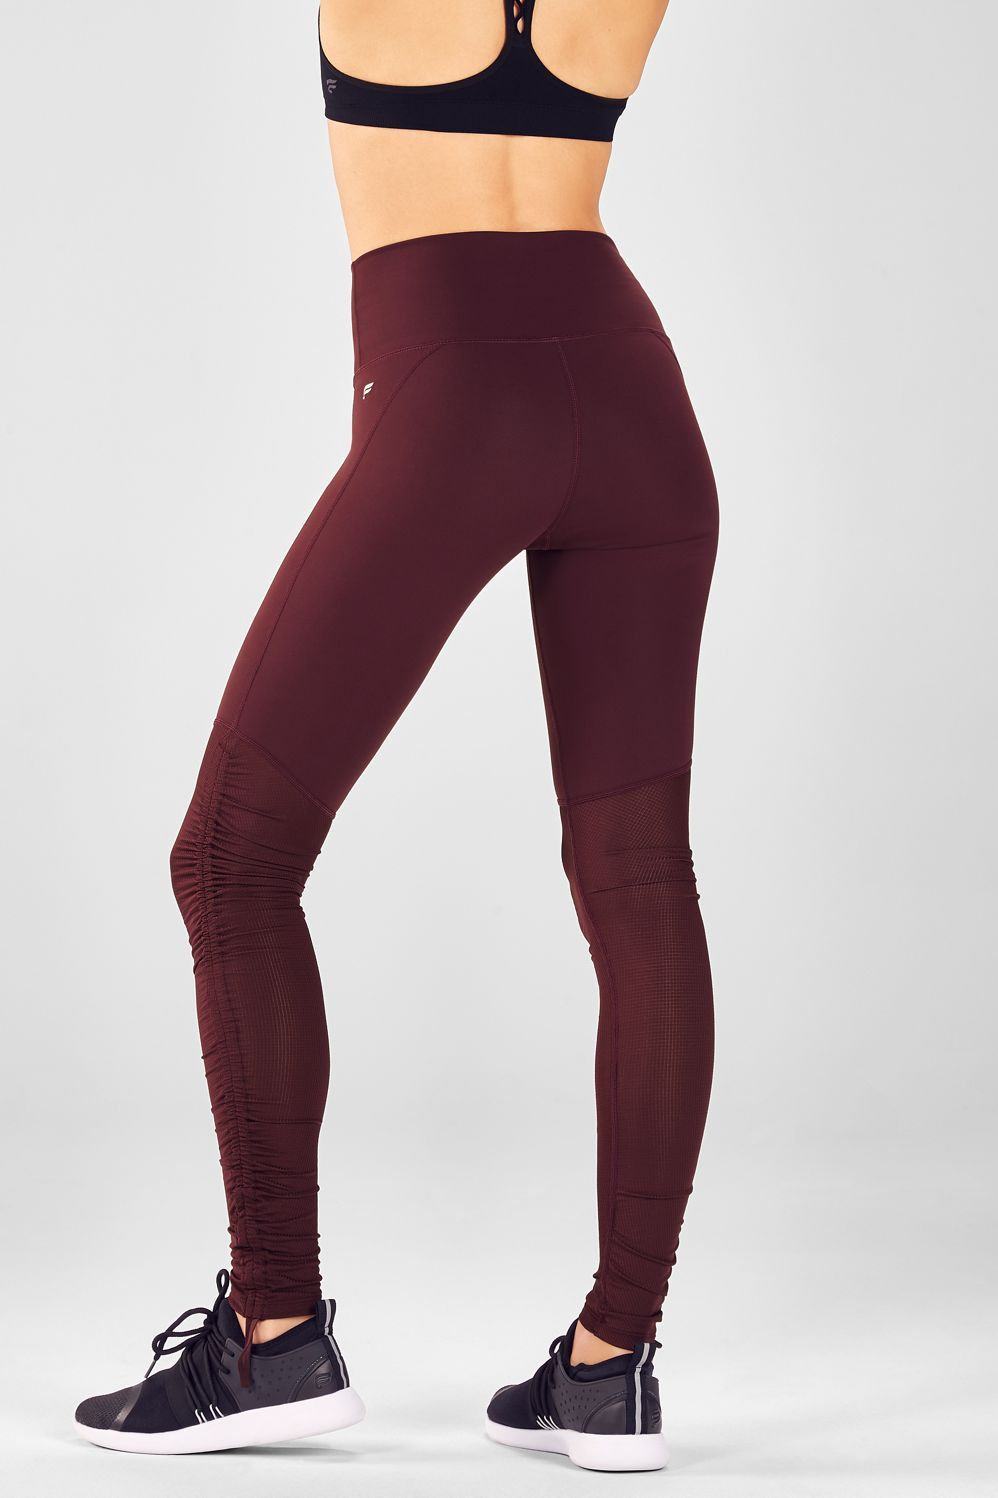 ce3afe07a3d58 Cashel Foldover PureLuxe Legging in 2019 | looks I want | Burgundy ...